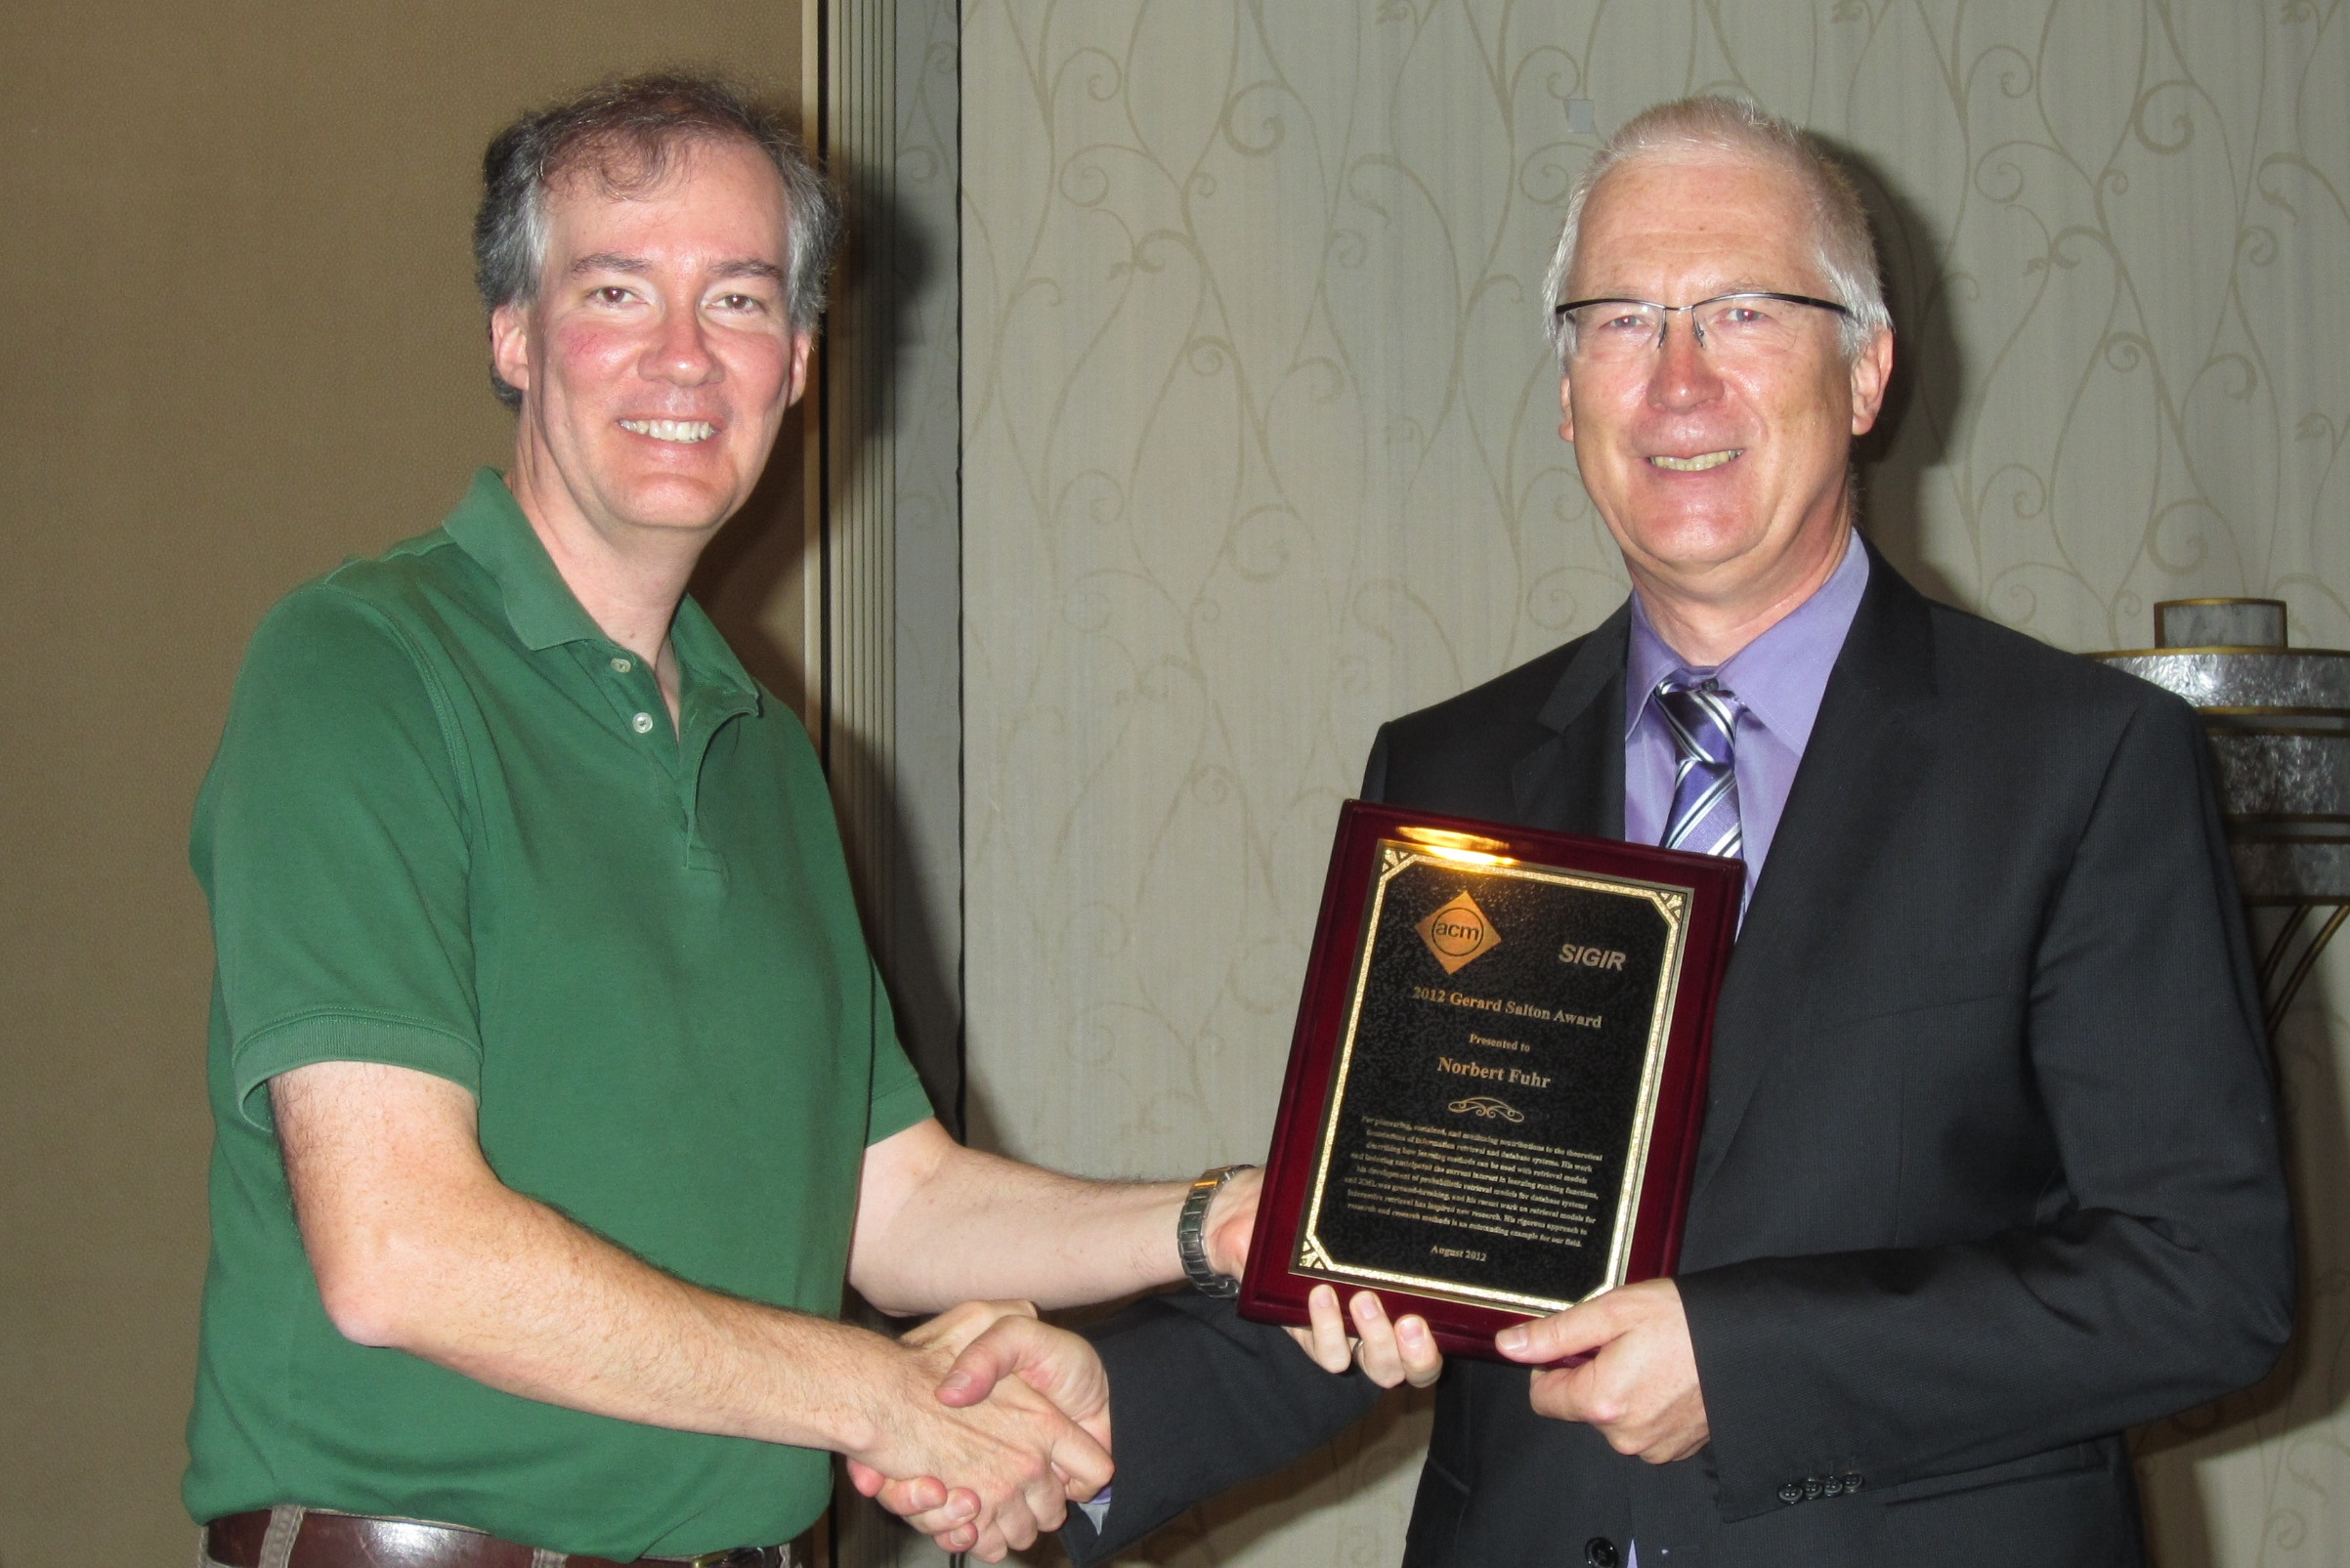 """And the award goes to the best dressed man in the room"" - Norbert Fuhr receiving the Salton Award at SIGIR 2012"